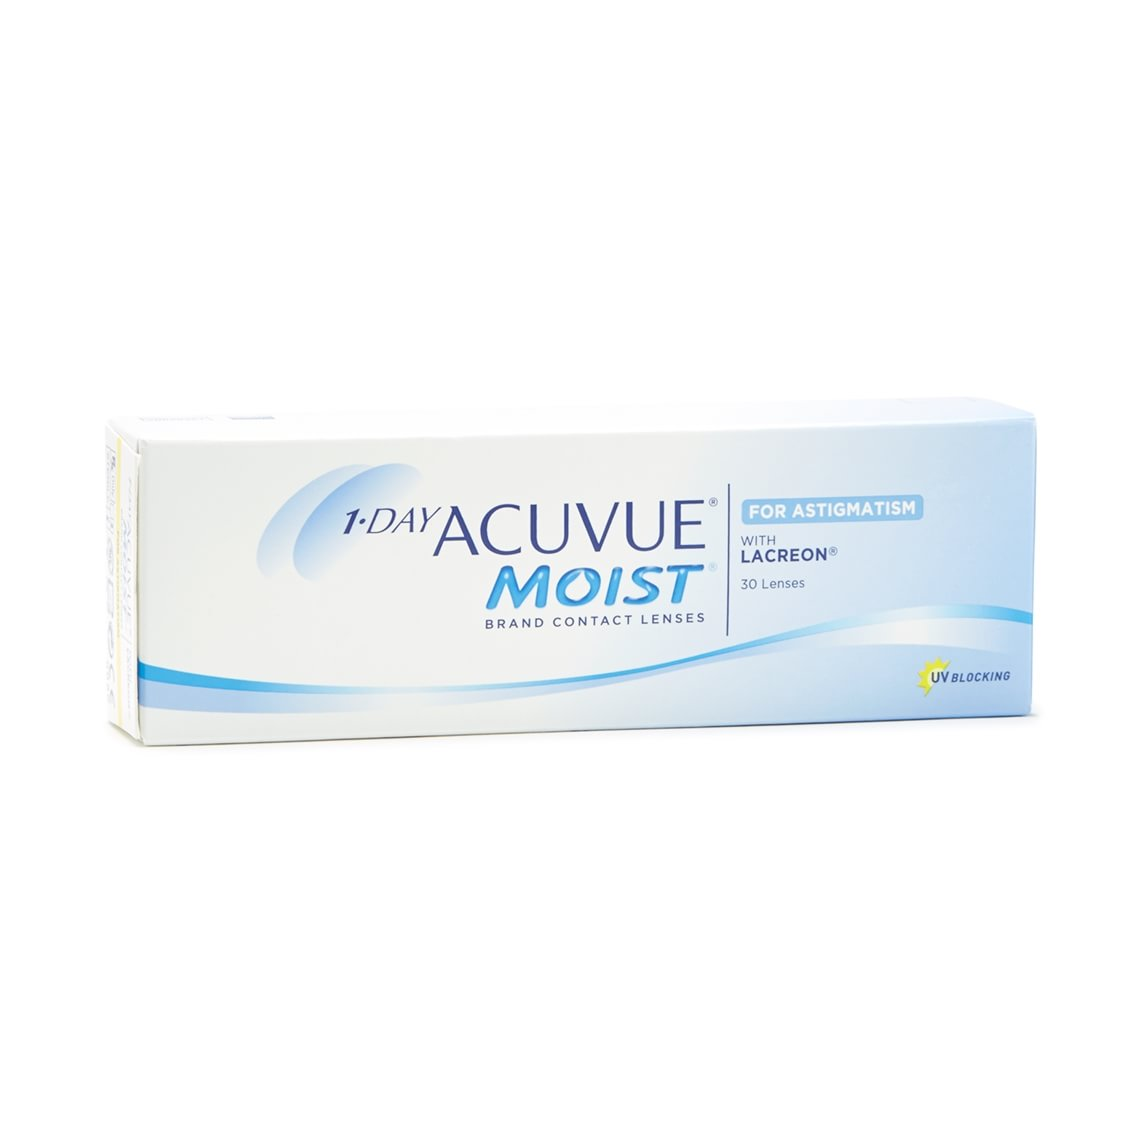 1-Day Acuvue Moist for Astigmatism 30 st/box